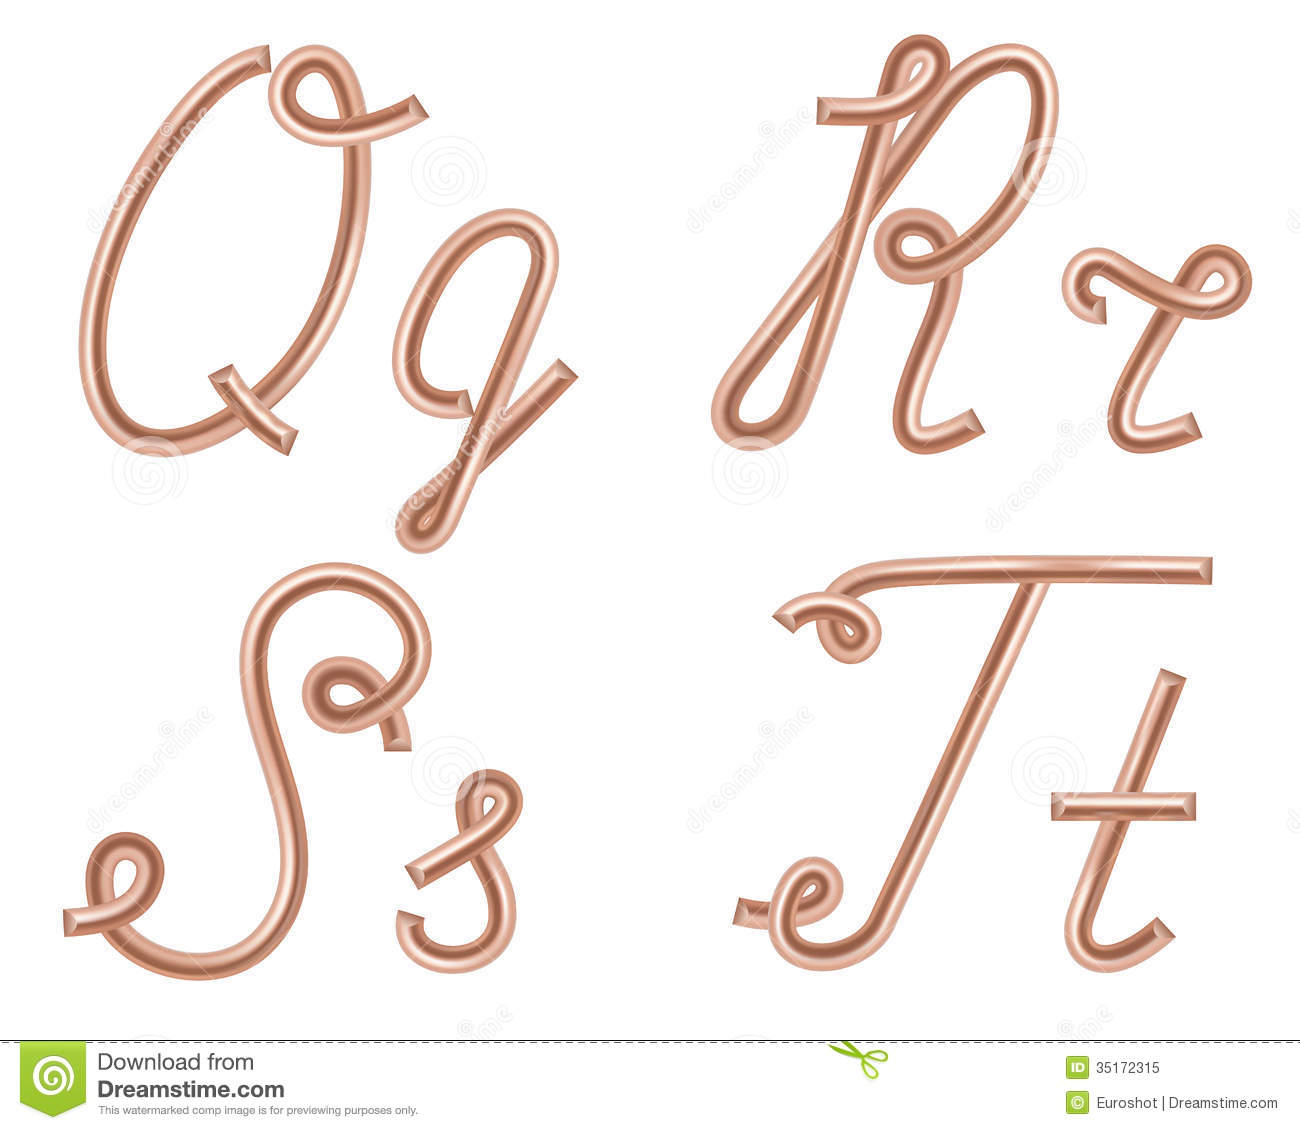 Q, R, S, T Vector Letters Made of Metal Copper Wire.